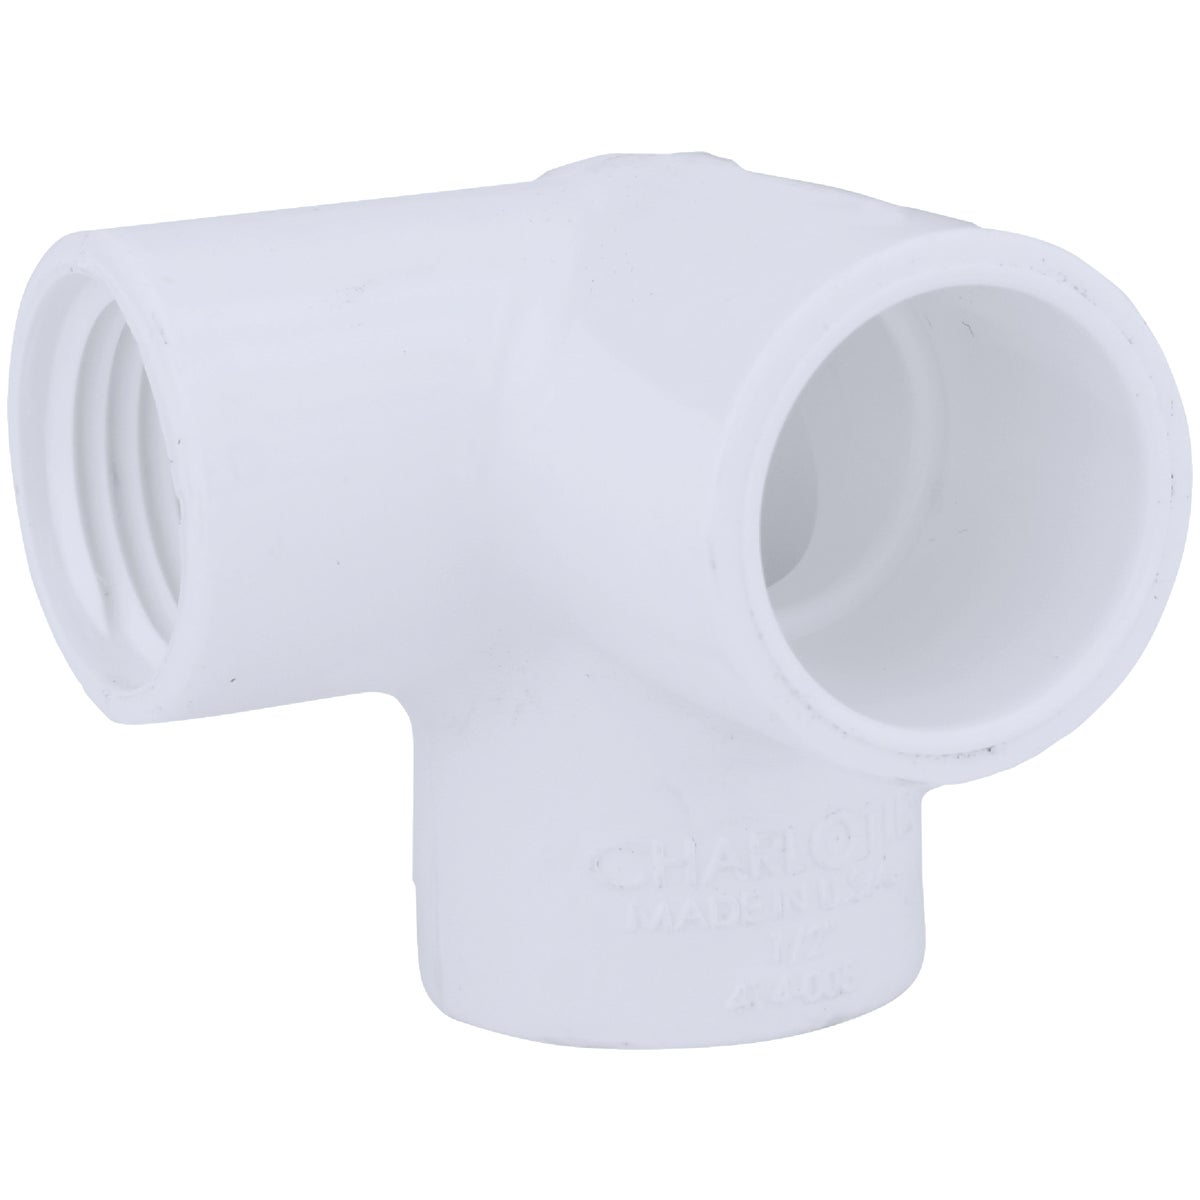 "1/2"" FIP S I 90D ELBOW - 33105 by Genova Inc"